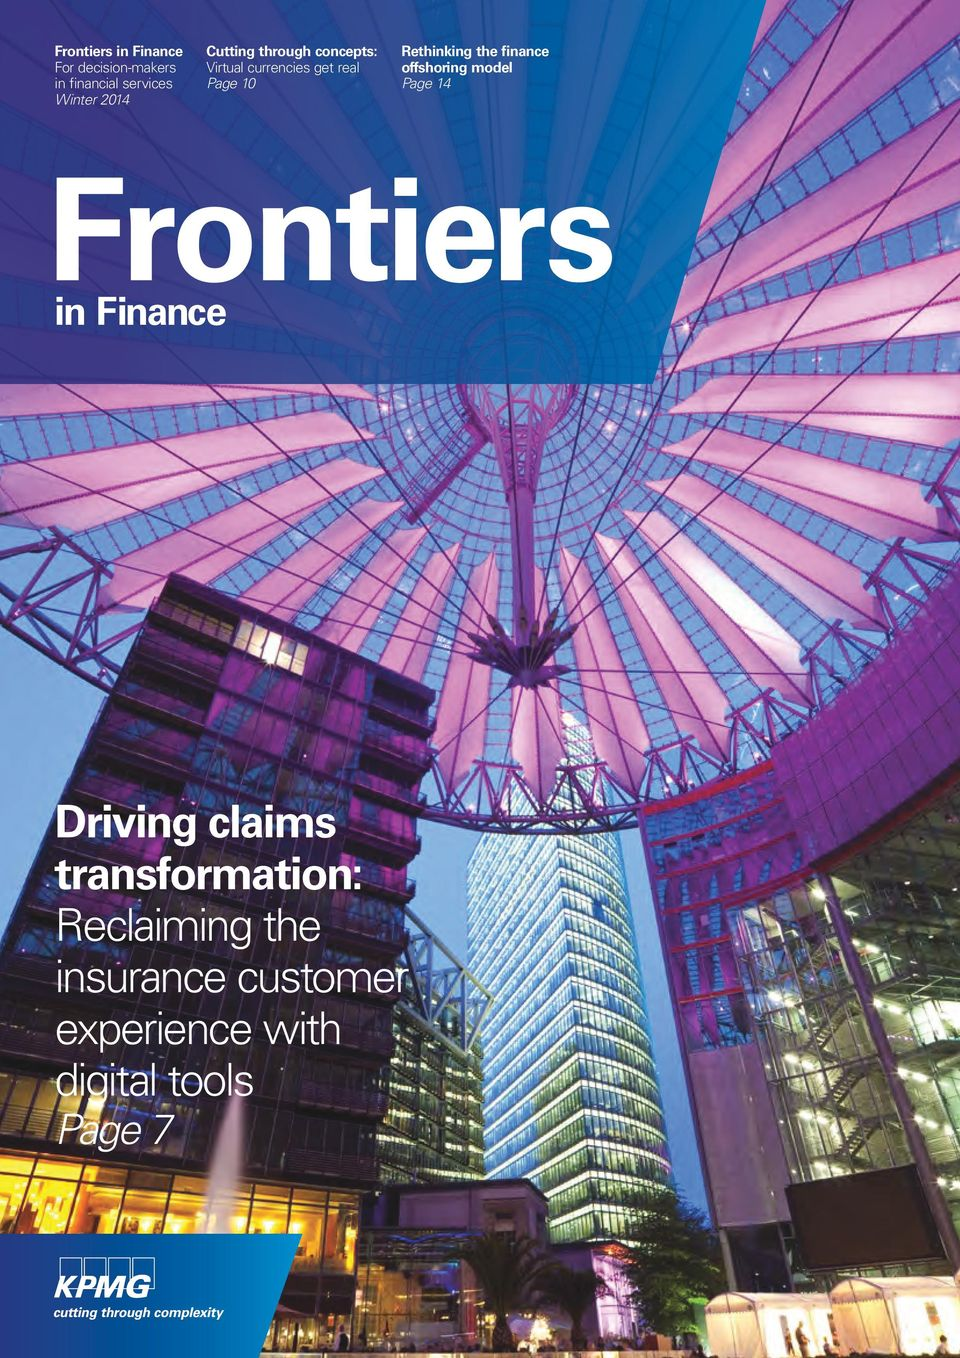 finance offshoring model Page 14 Frontiers in Finance Driving claims